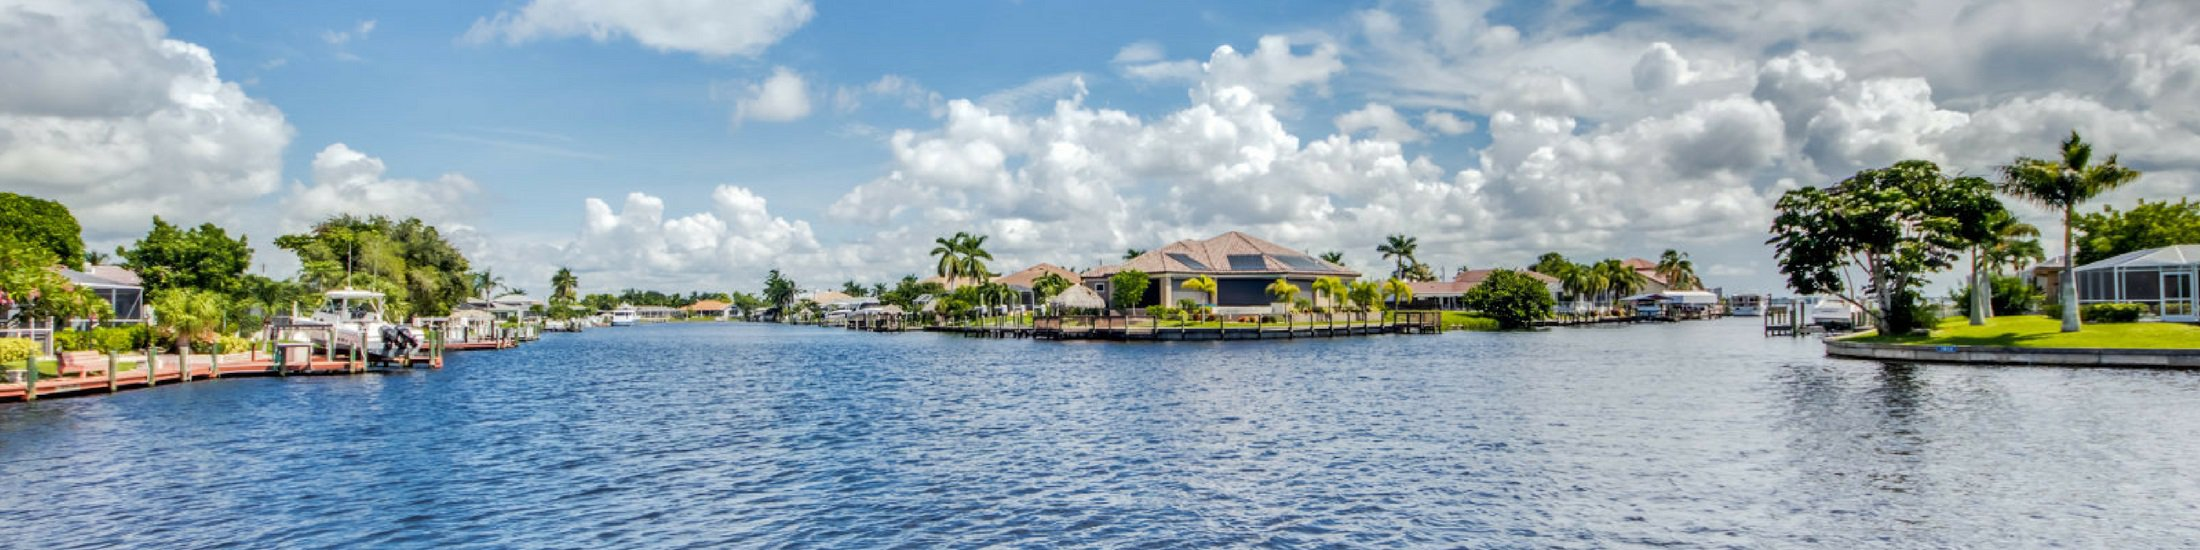 Sunset Pointe Homes for Sale